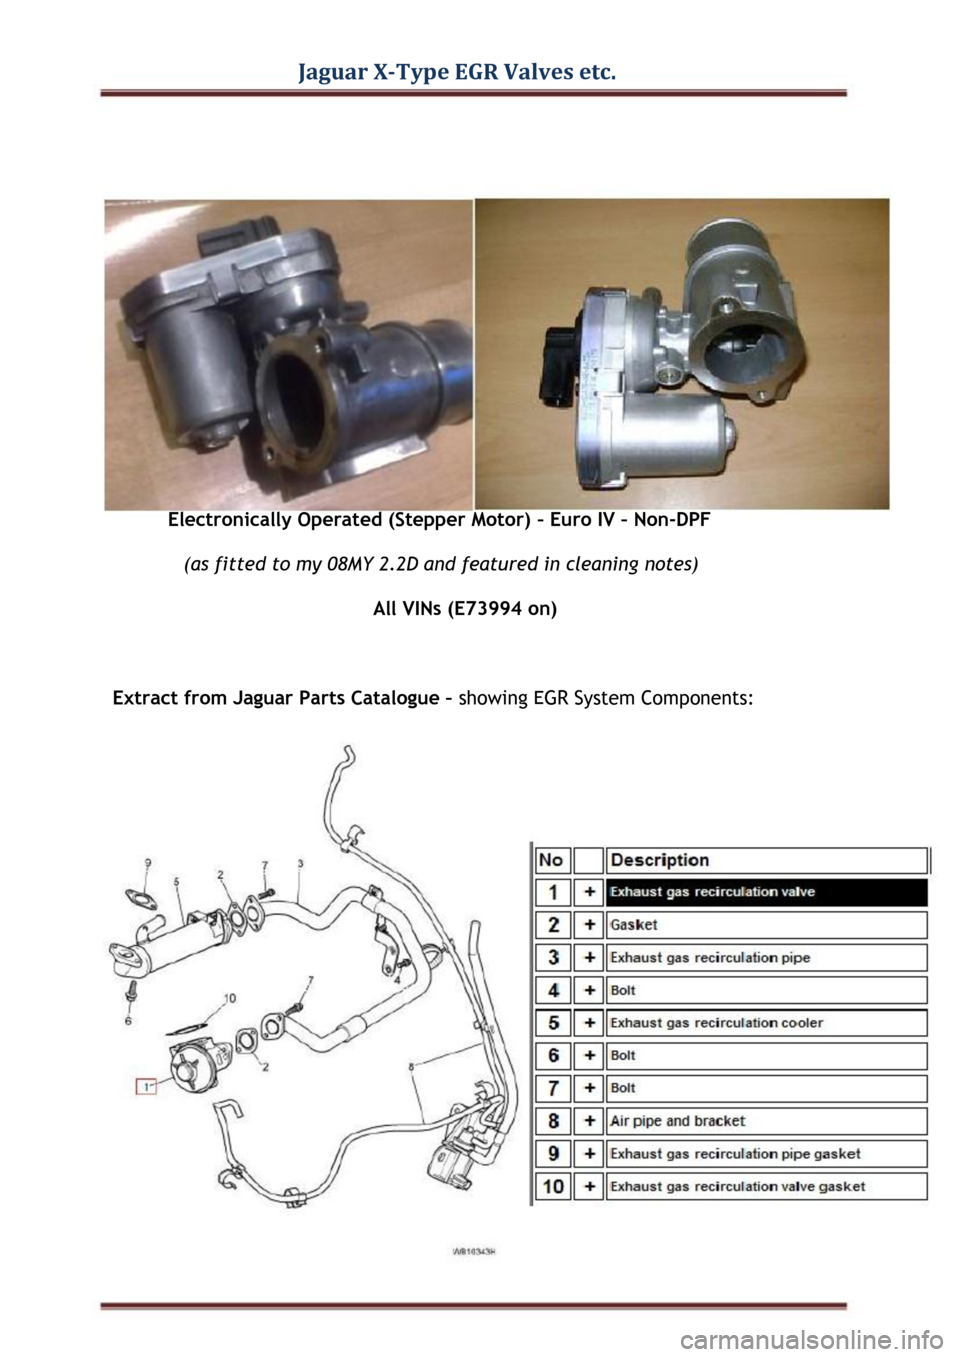 JAGUAR X TYPE 2004 1.G EGR Valves Parts Manual Jaguar X-Type EGR Valves etc.  Electronically Operated (Stepper Motor) – Euro IV – Non-DPF  (as fitted to my 08MY 2.2D and featured in cleaning notes)  All VINs (E73994 on)  Extract from Jaguar Pa